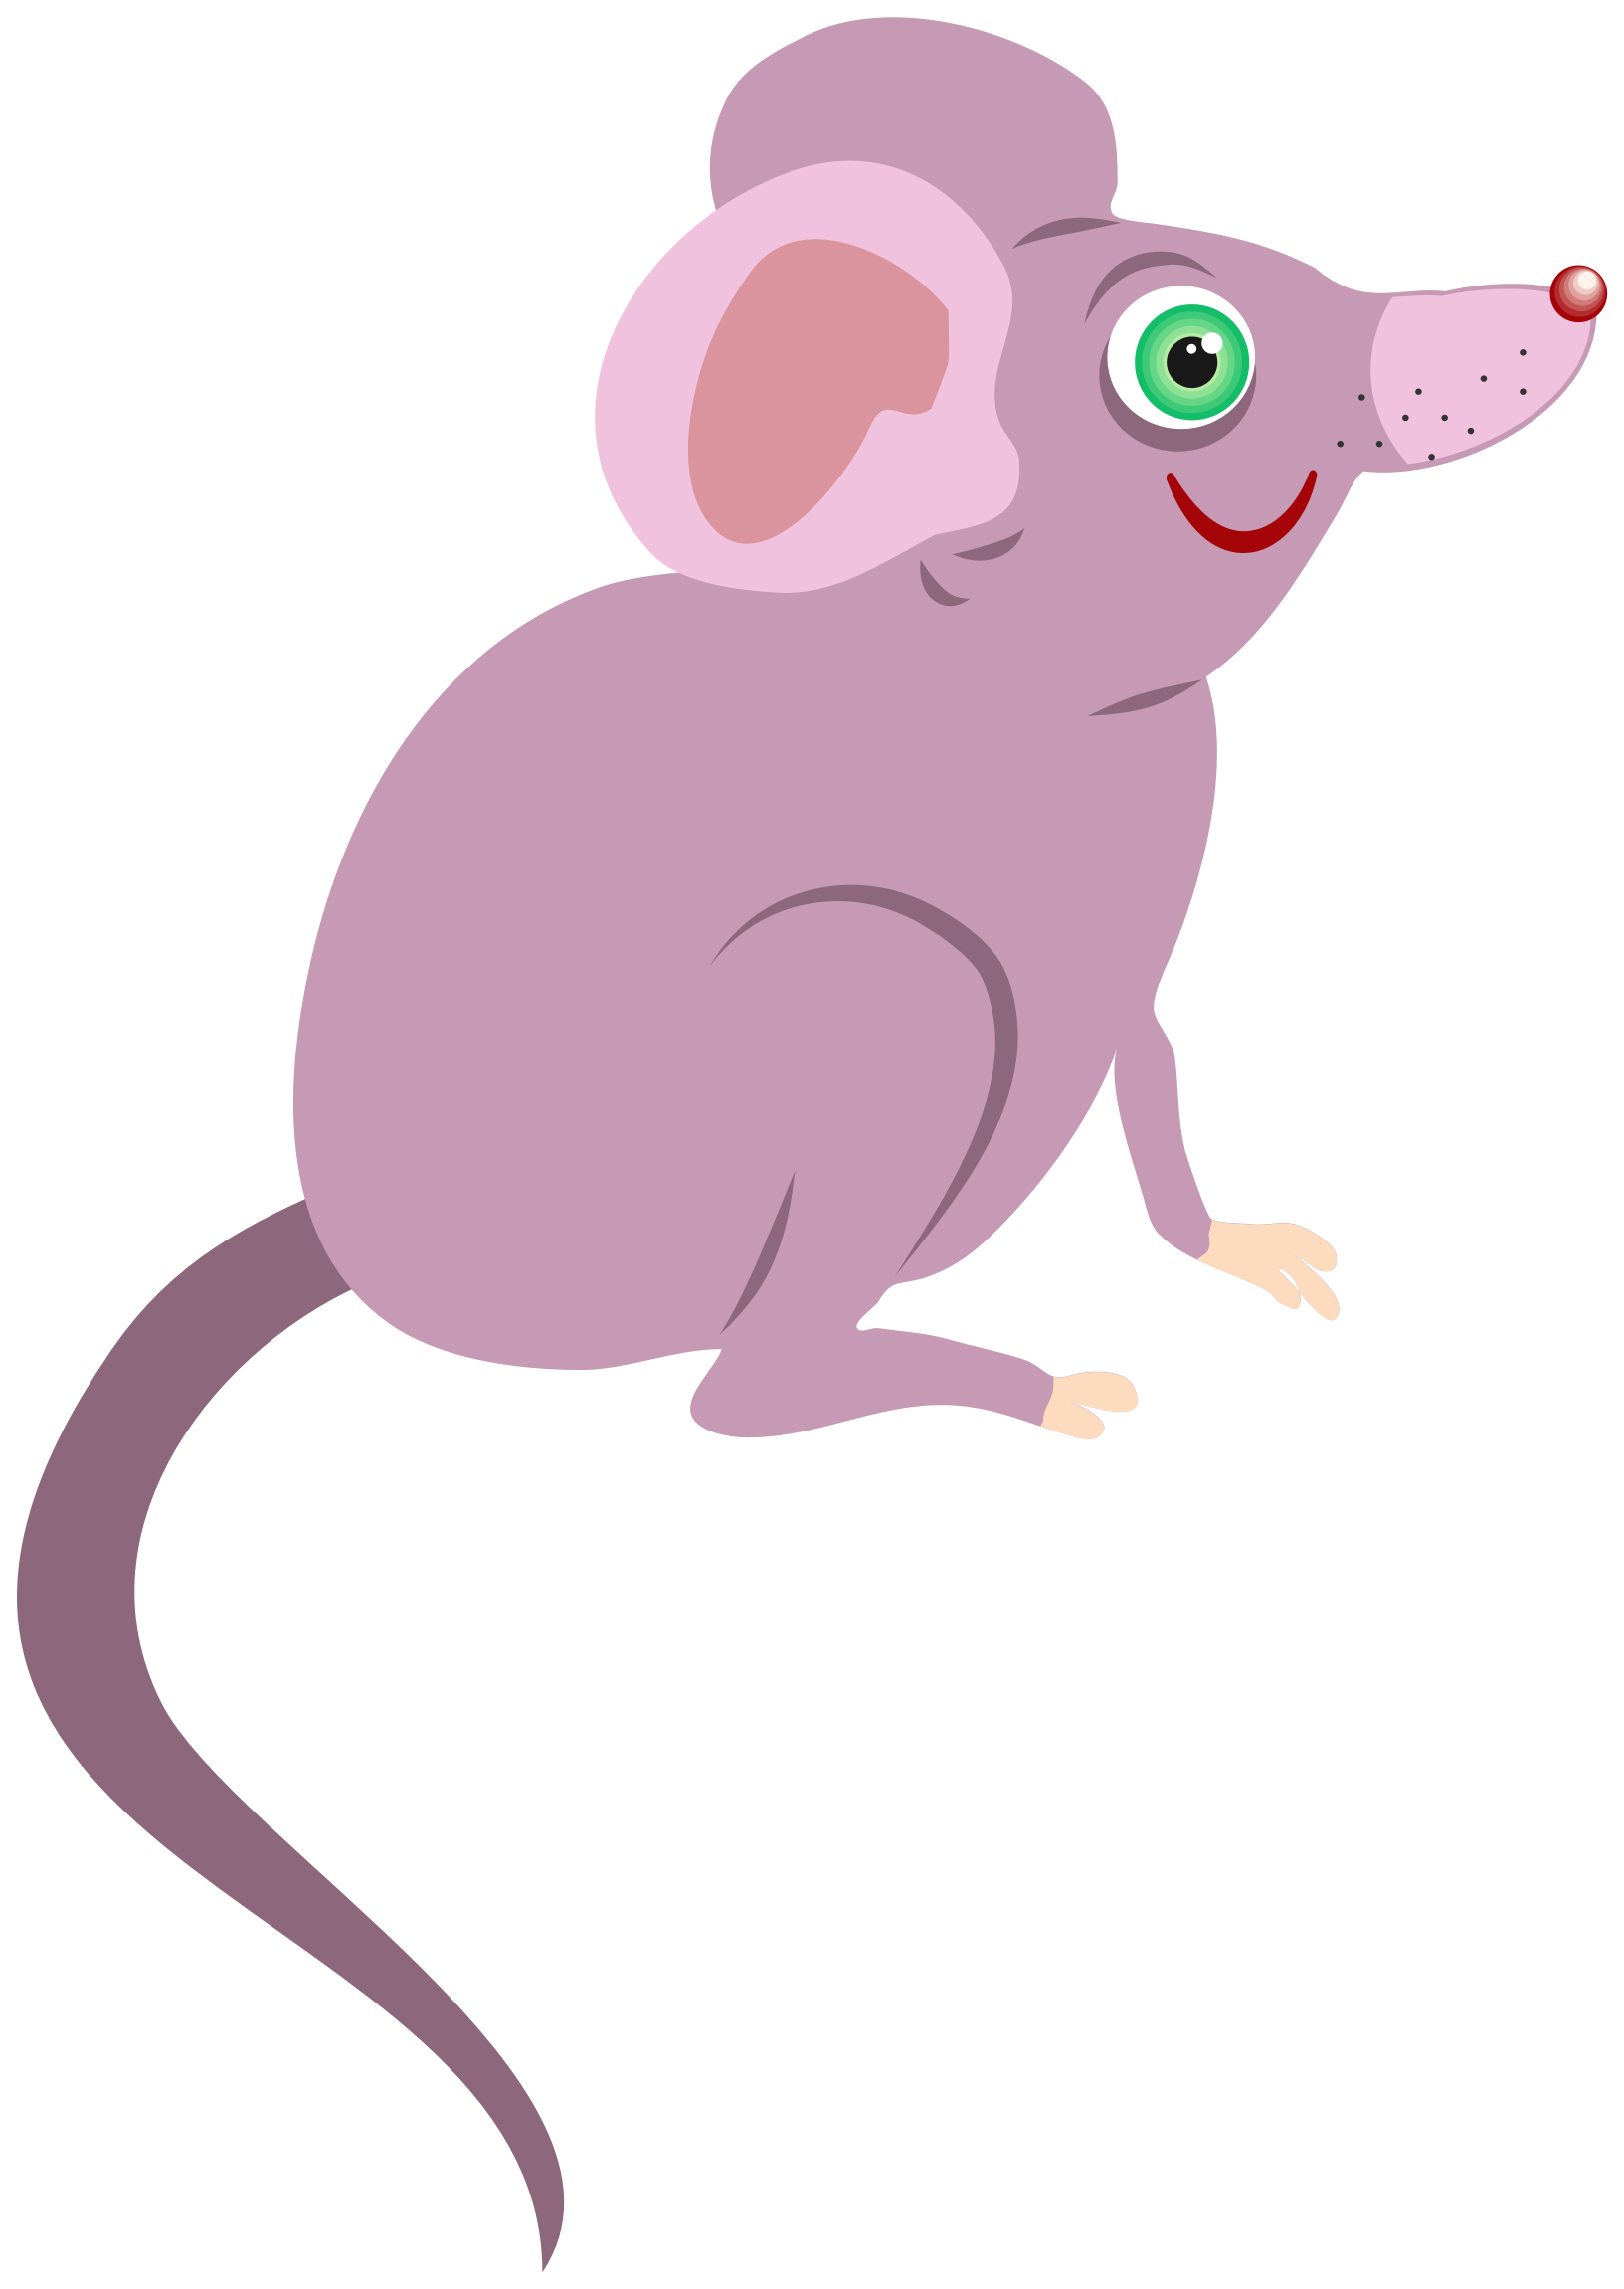 Cartoon Mouse by Prawny